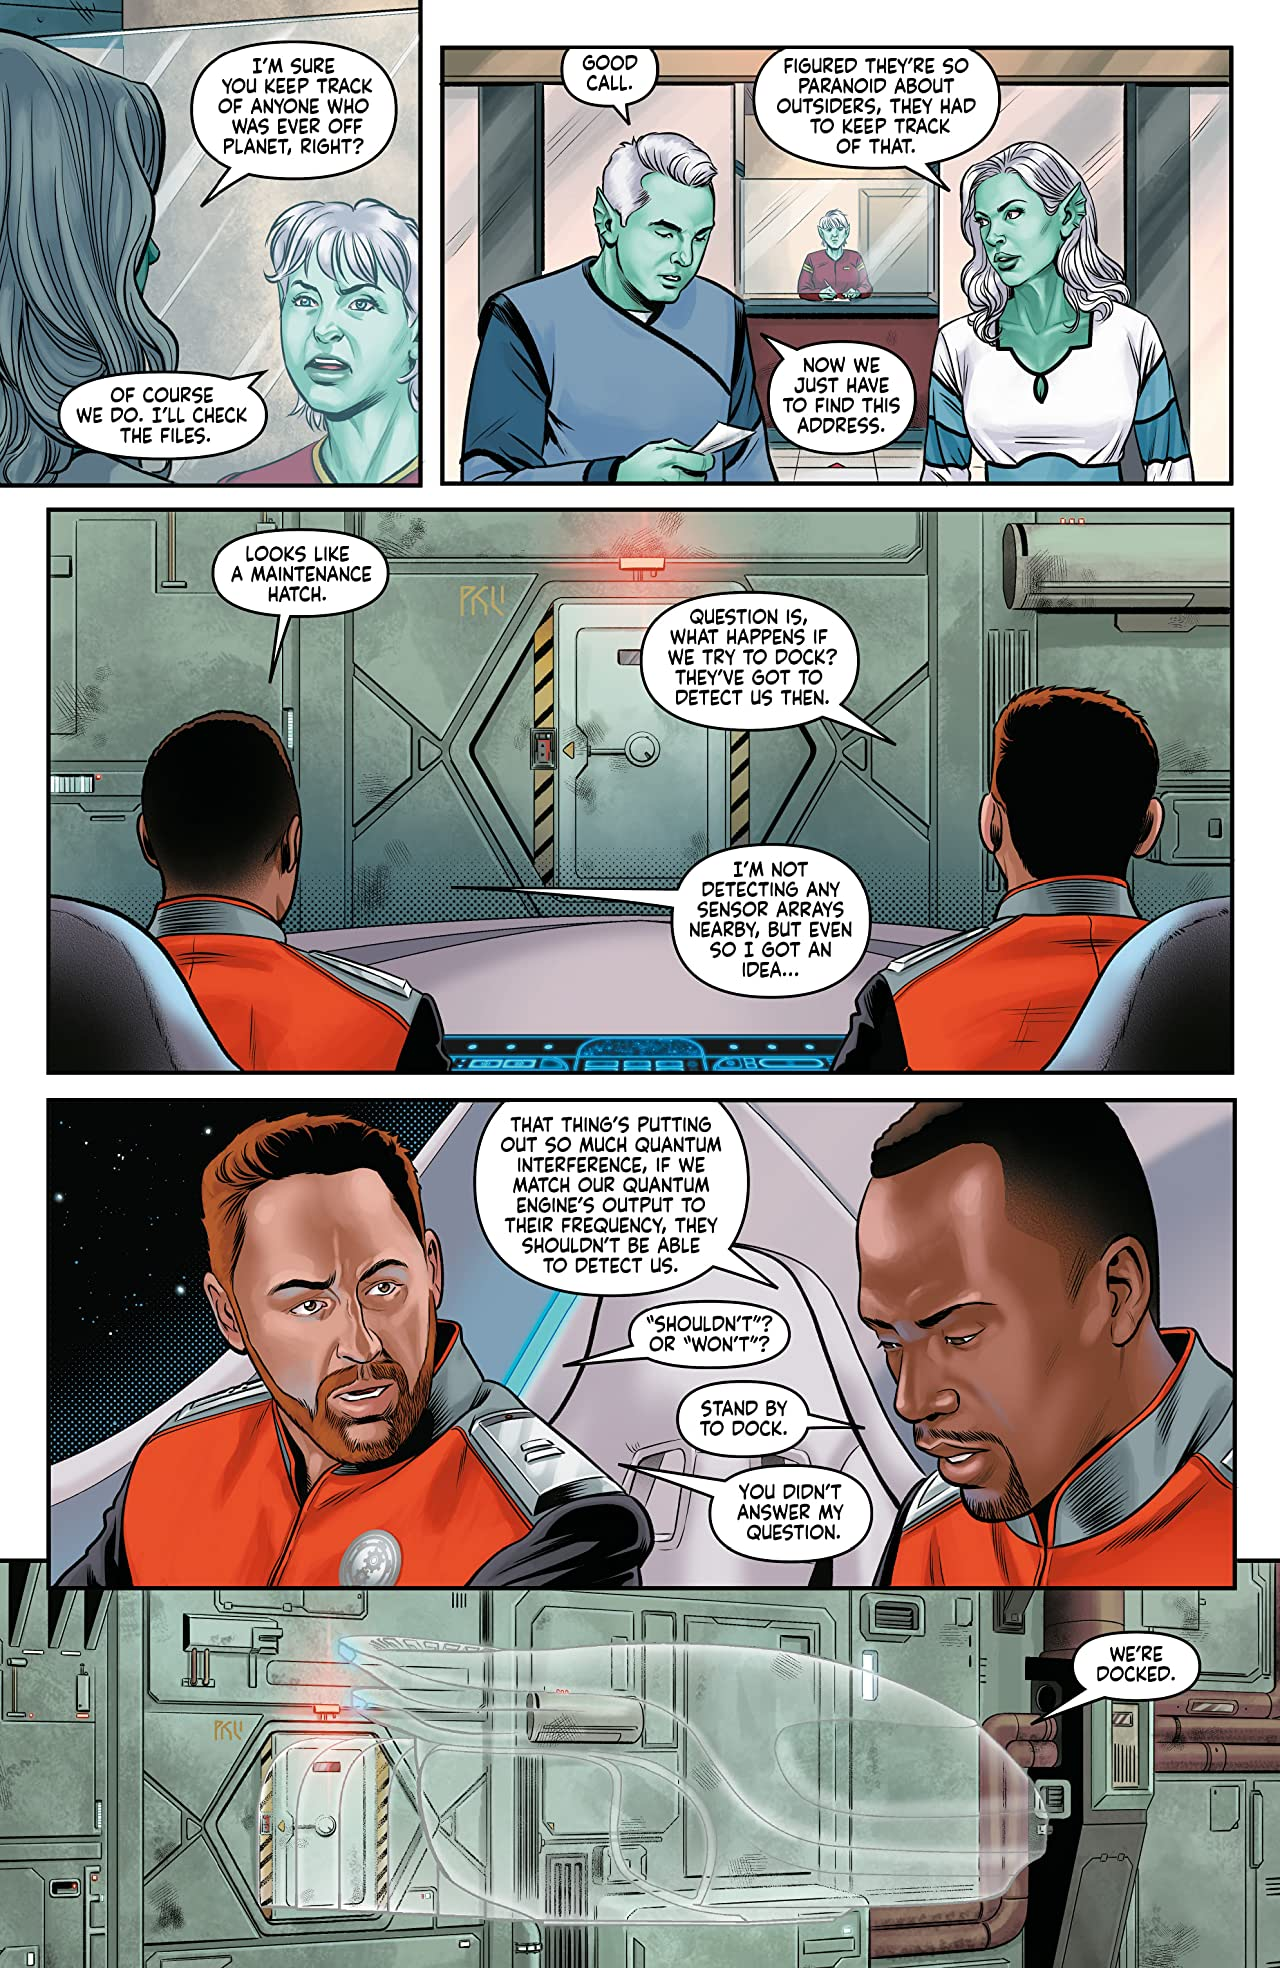 The Orville #2: Launch Day (Part 2 of 2)